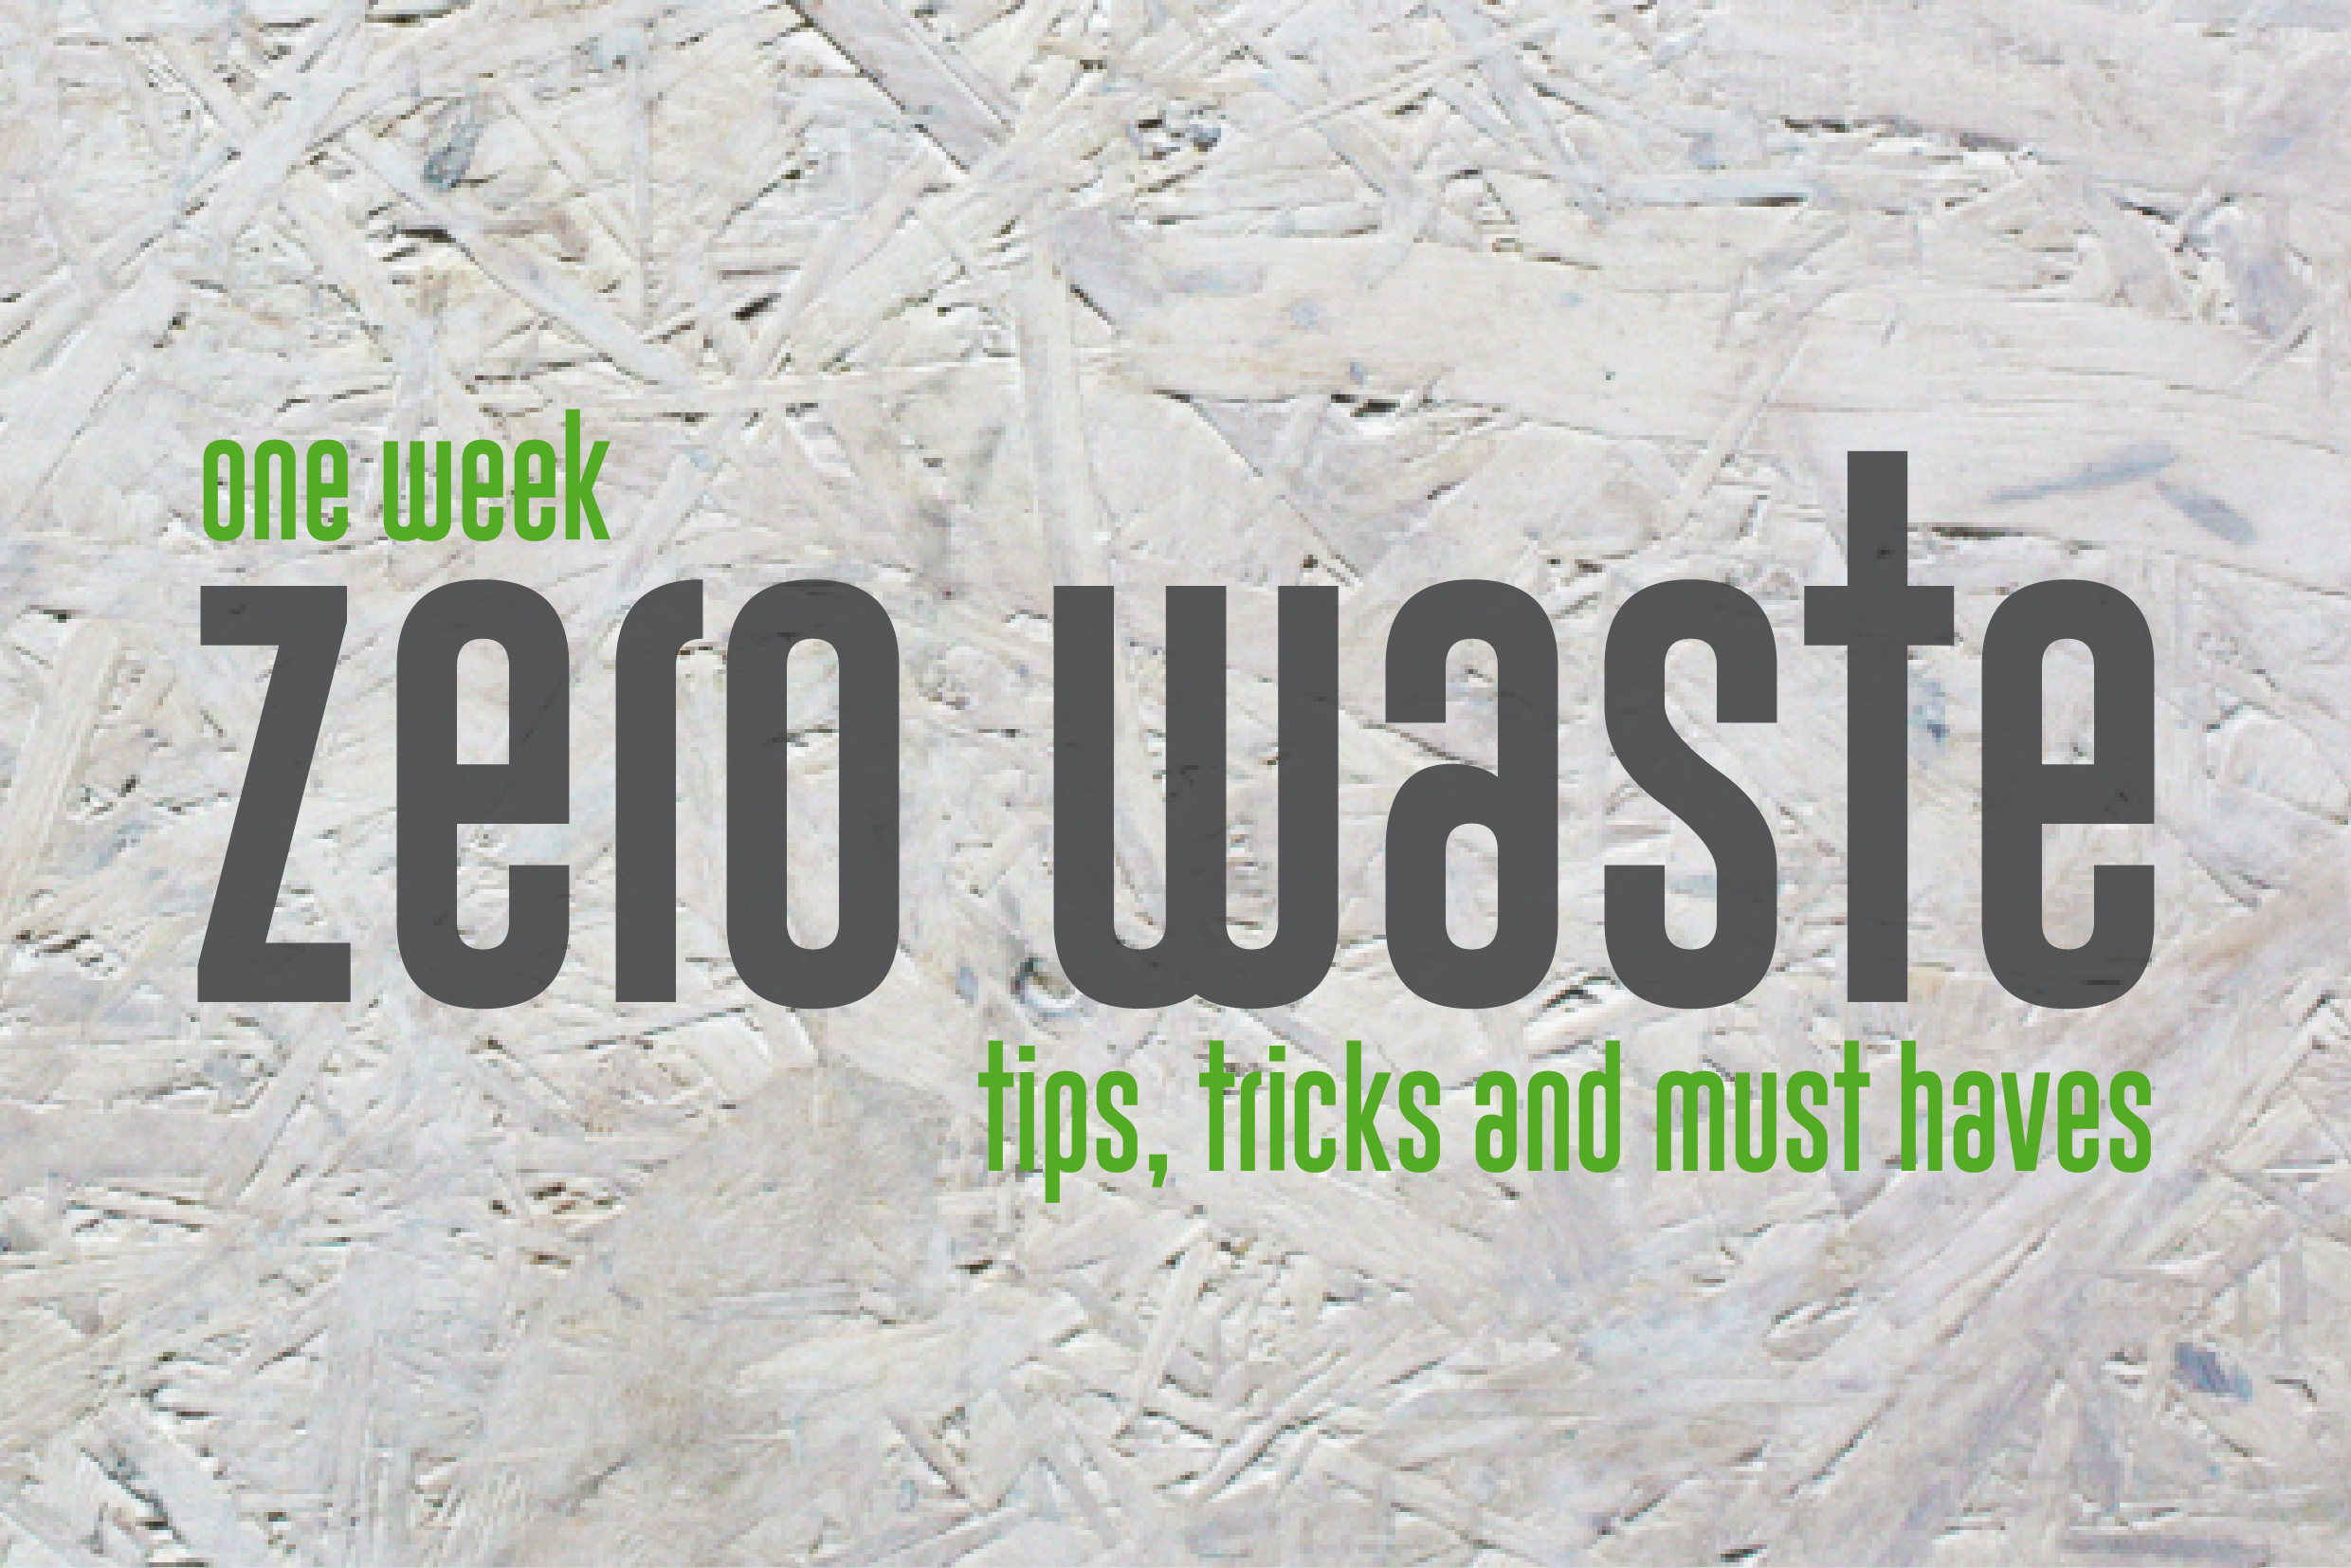 zero waste - tips, tricks and must haves | Toastenstein